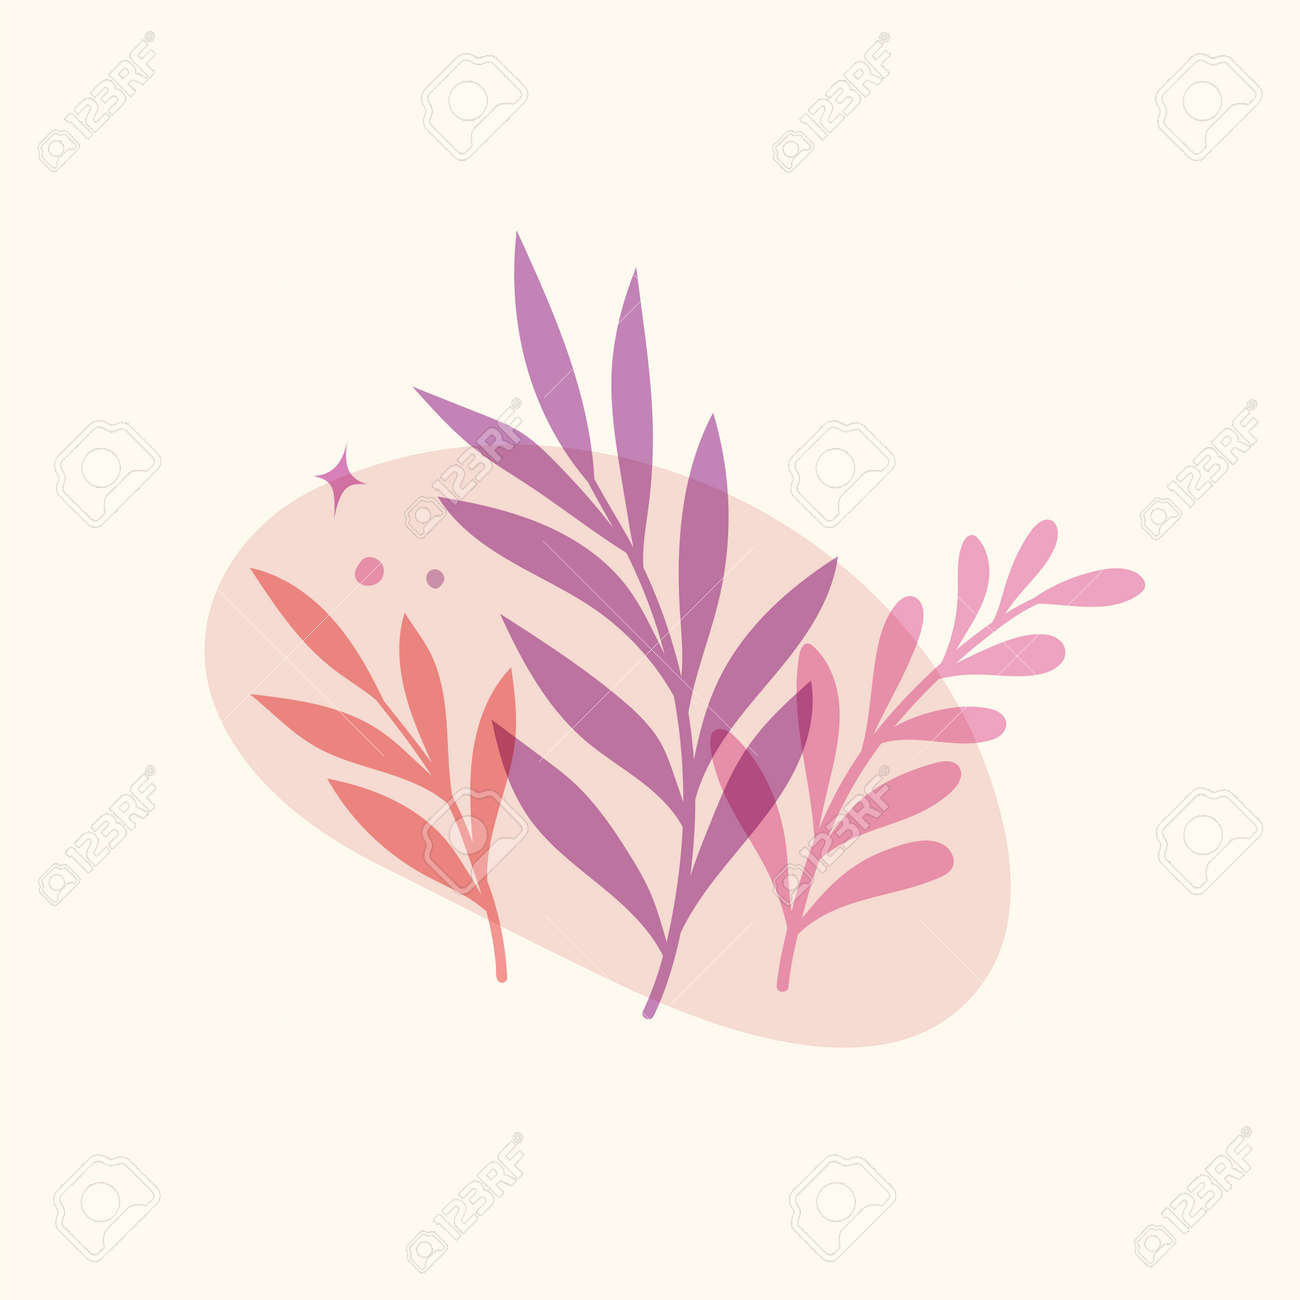 Vector modern floral arrangement background. Cute delicate botanical illustration with leaves and plants. - 168265086